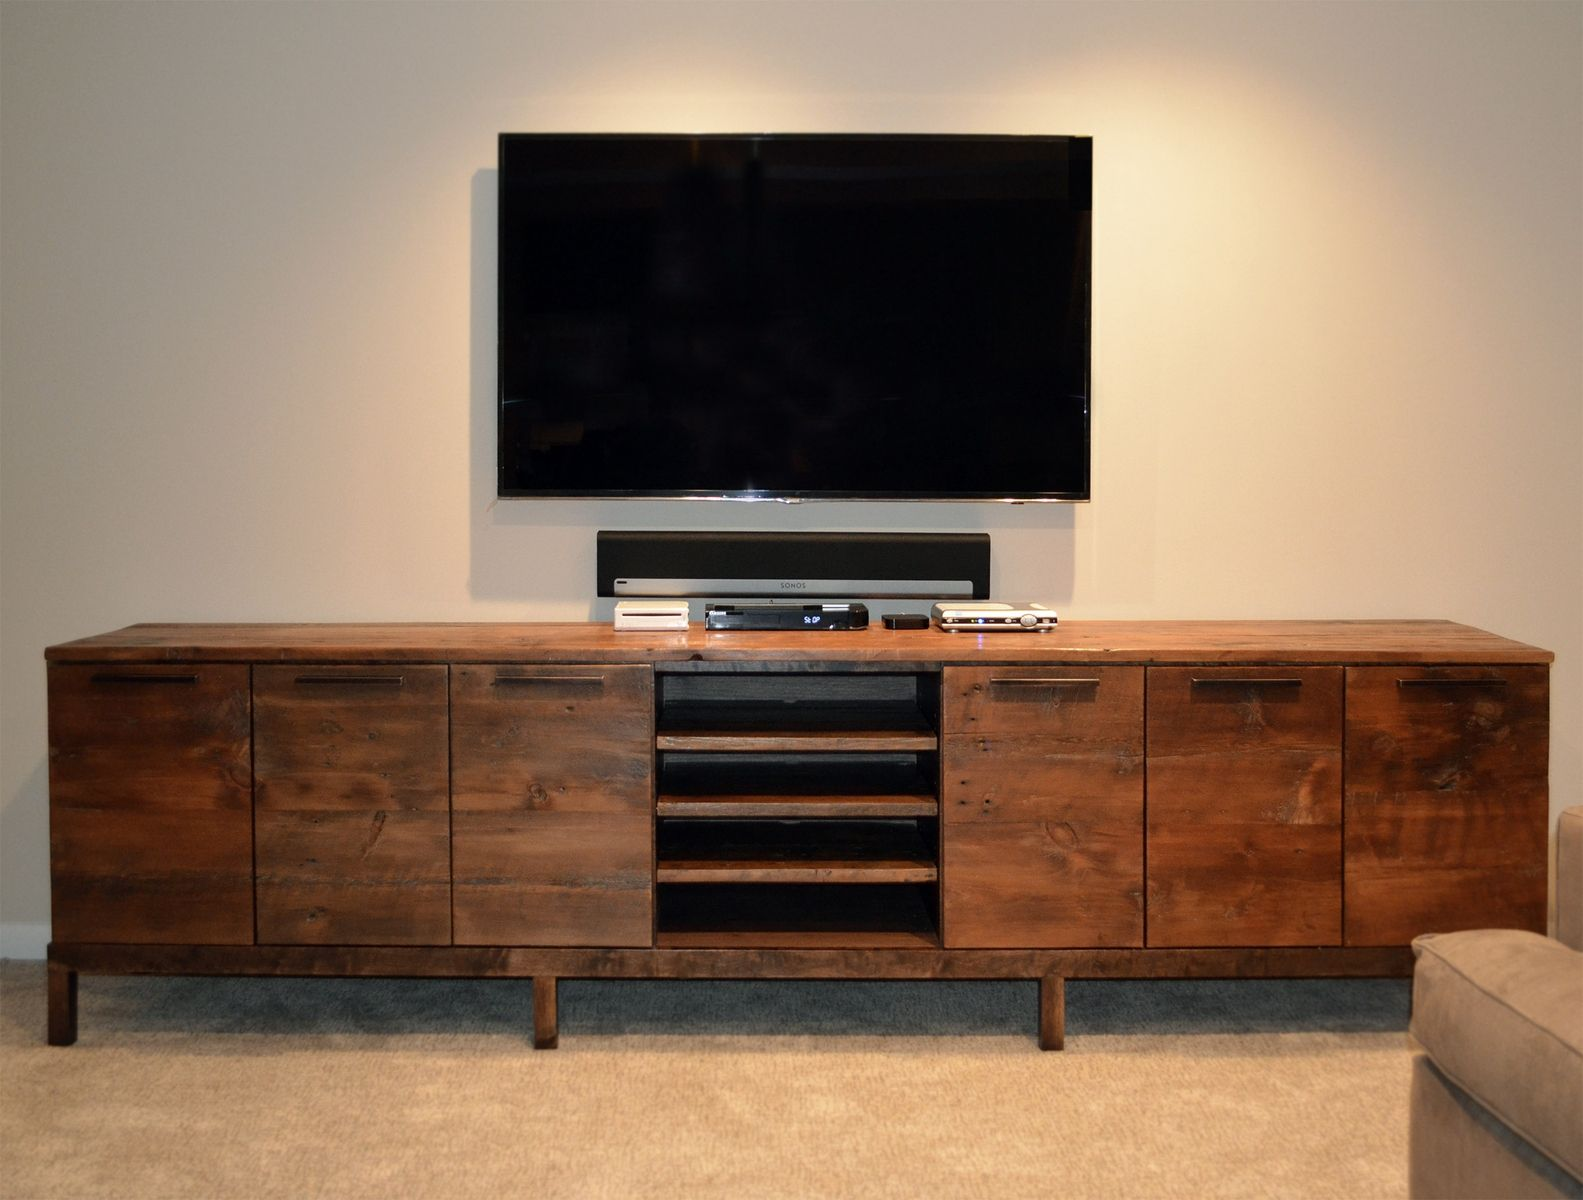 Handmade reclaimed wood media center console by